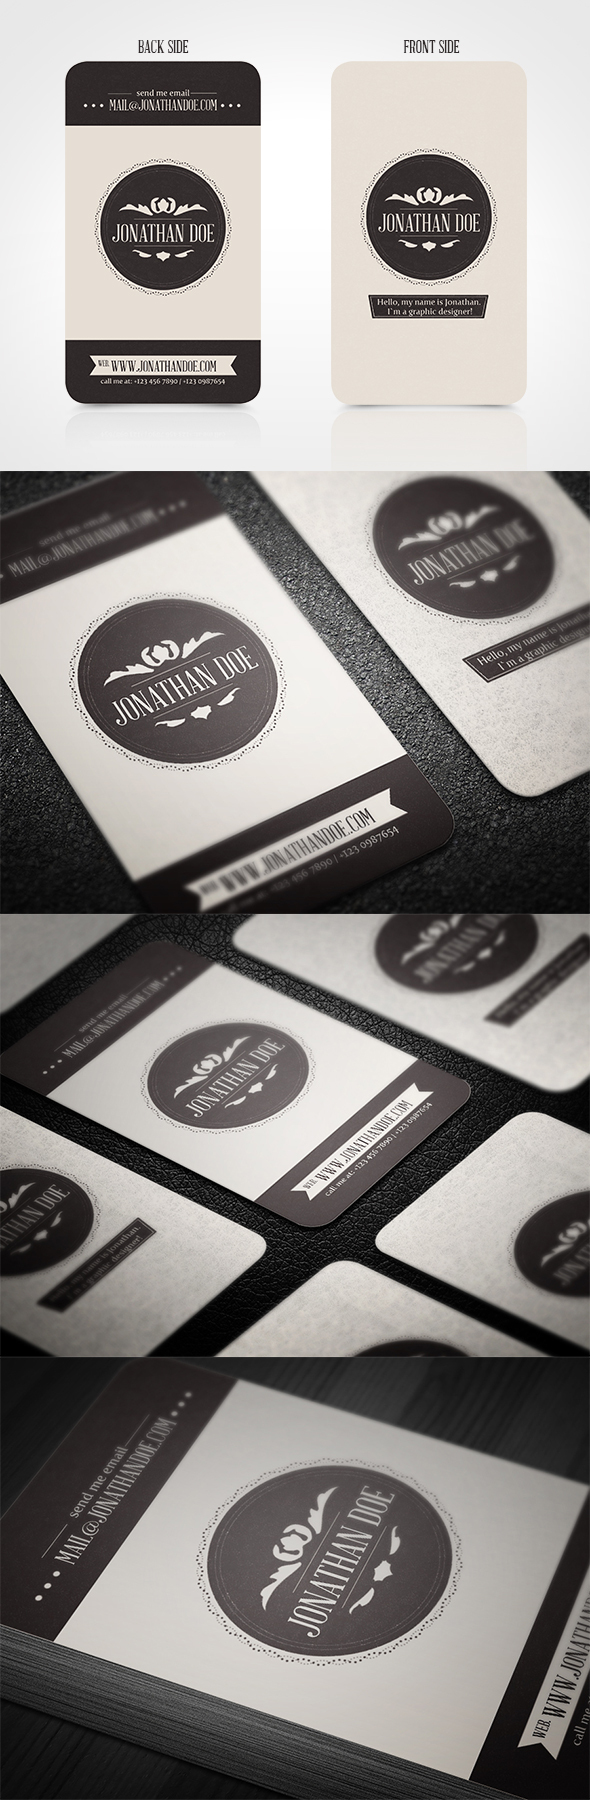 50 epic psd business card template files corporate business card psd template accmission Gallery